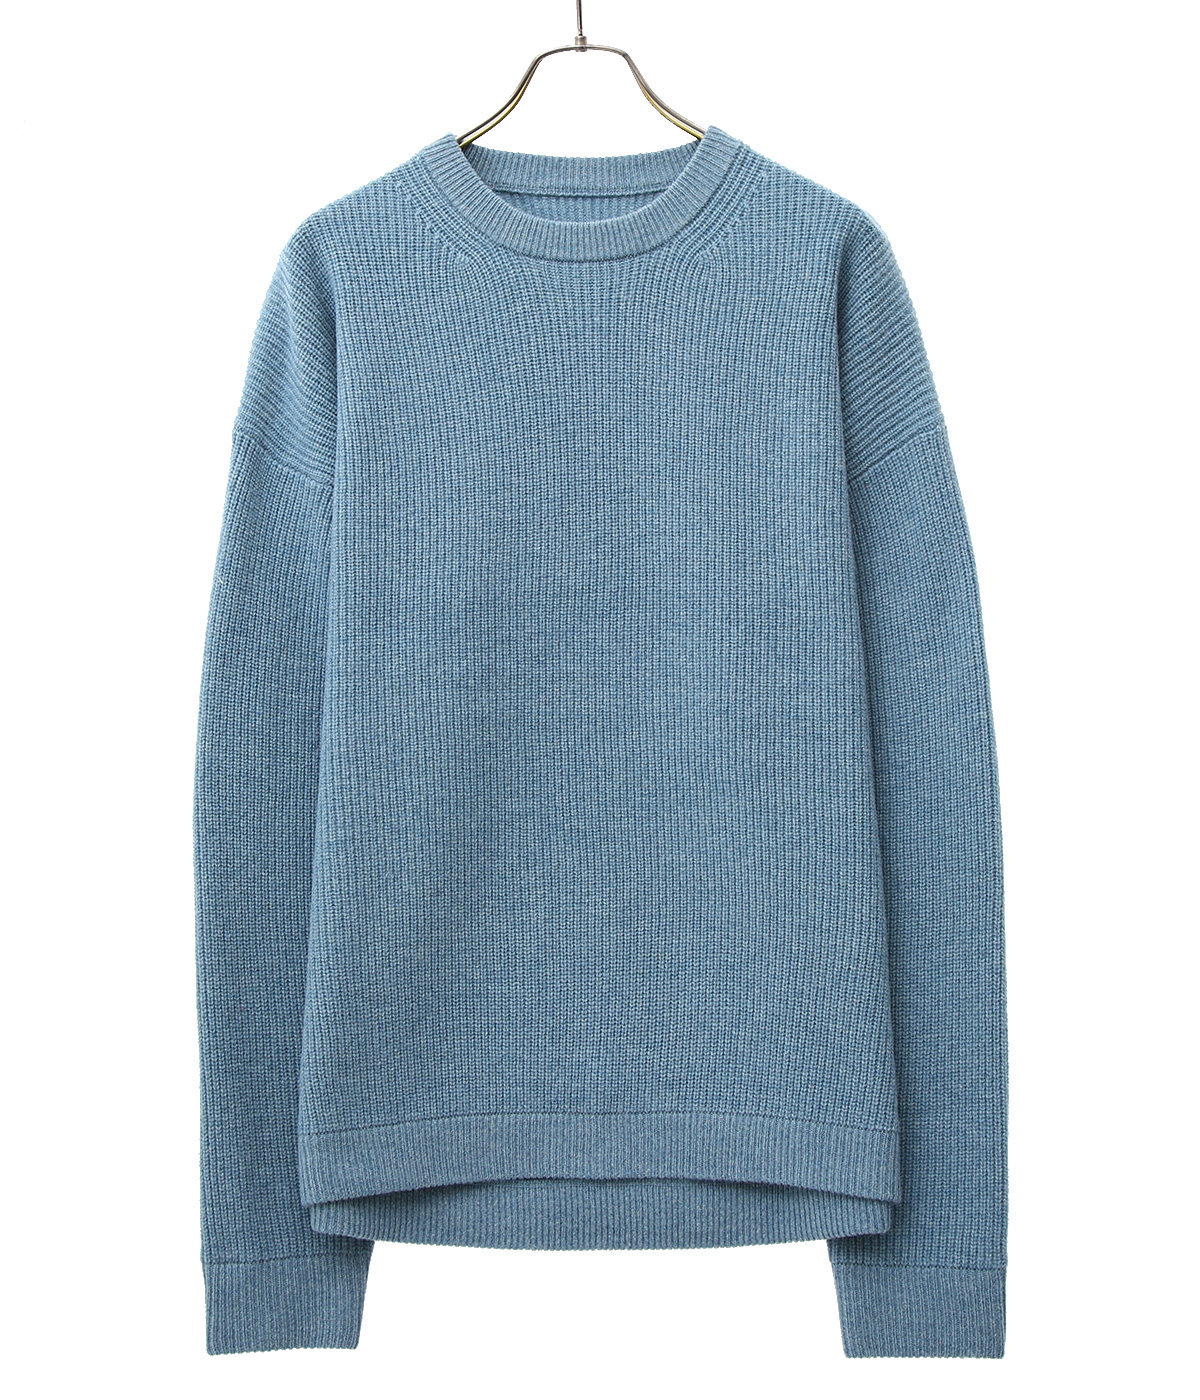 【ONLY ARK】別注 AZE L/S